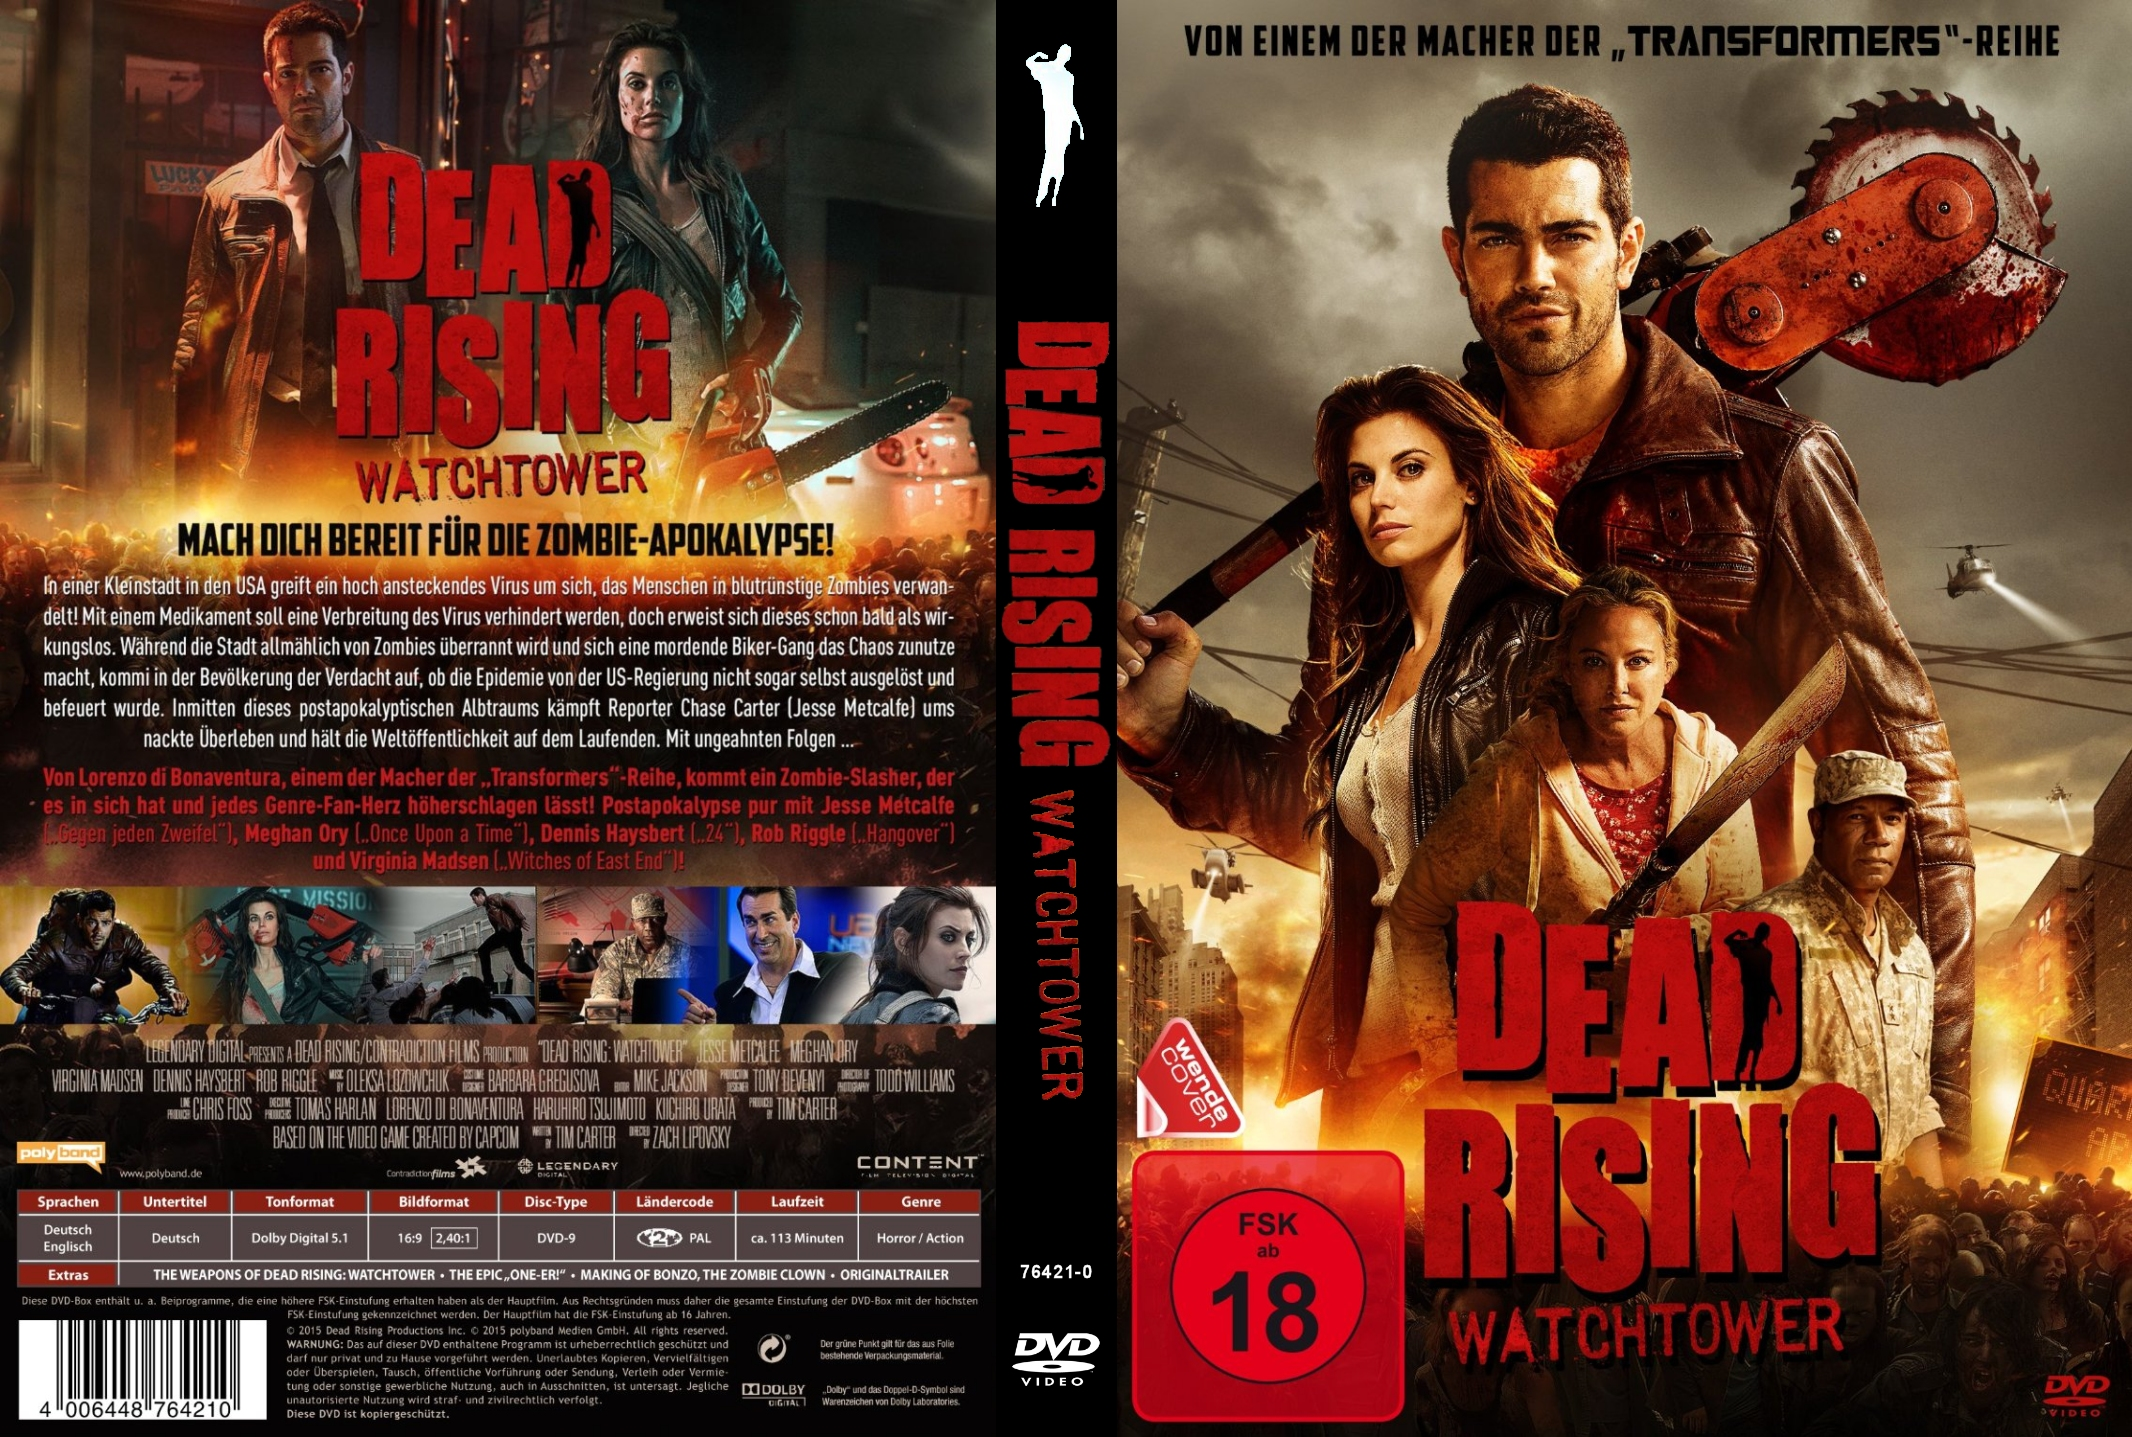 Dead Rising Watchtower Wallpapers Movie Hq Dead Rising Watchtower Pictures 4k Wallpapers 2019